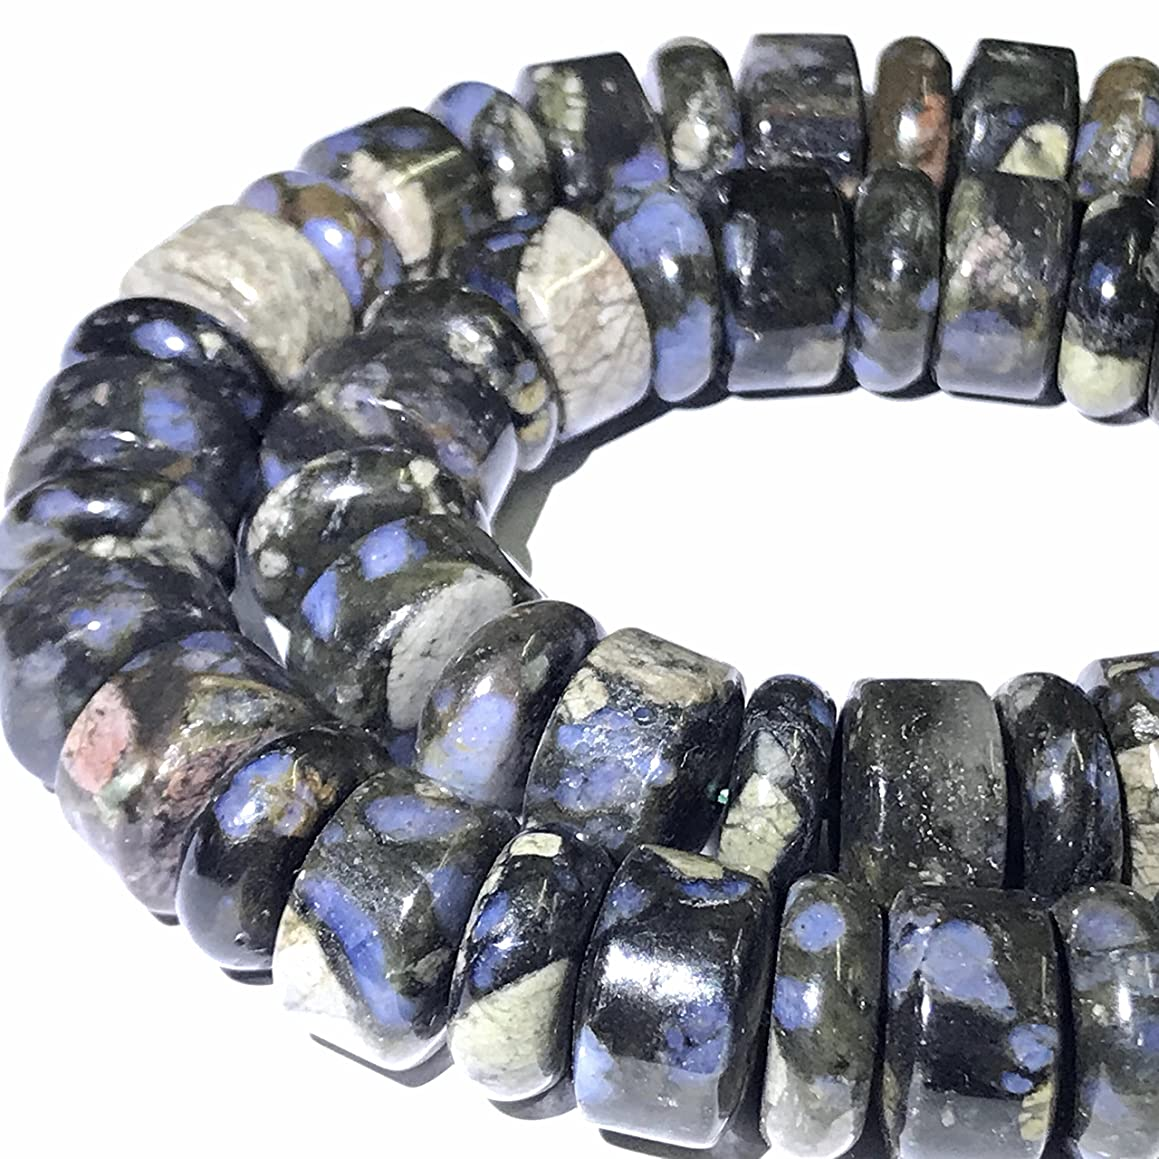 [ABCgems] Rare Brazilian Blue Rhyolite AKA Black Opal (Exquisite Color- Beautiful Matrix) 14mm Smooth Heishi & Rondelle Beads for Beading & Jewelry Making